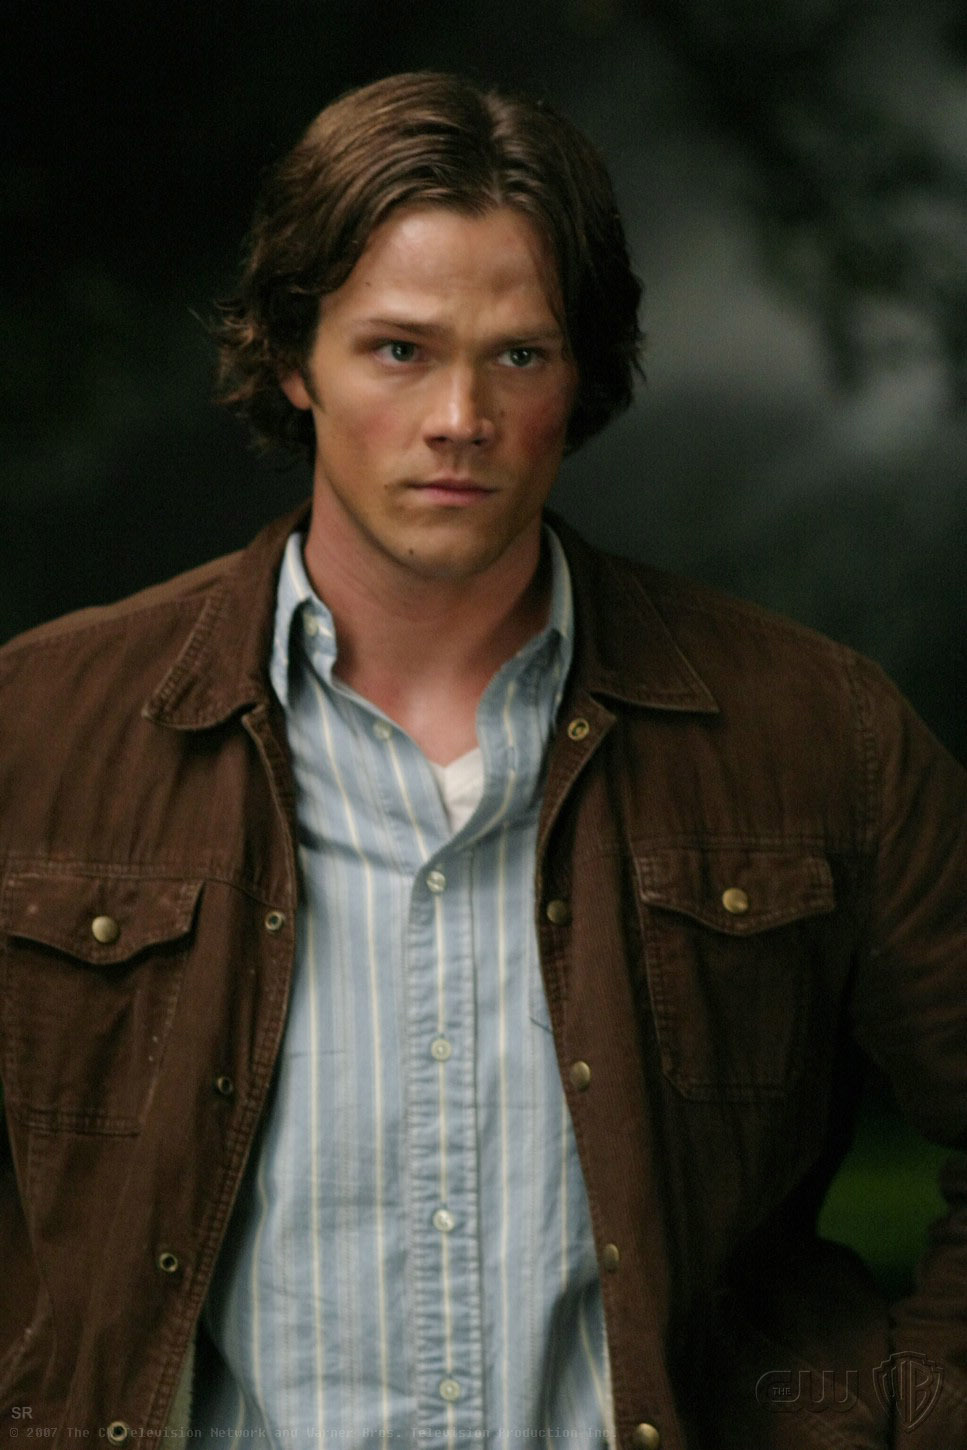 http://images1.fanpop.com/images/photos/2200000/Supernatural-stills-sam-winchester-2216075-967-1450.jpg